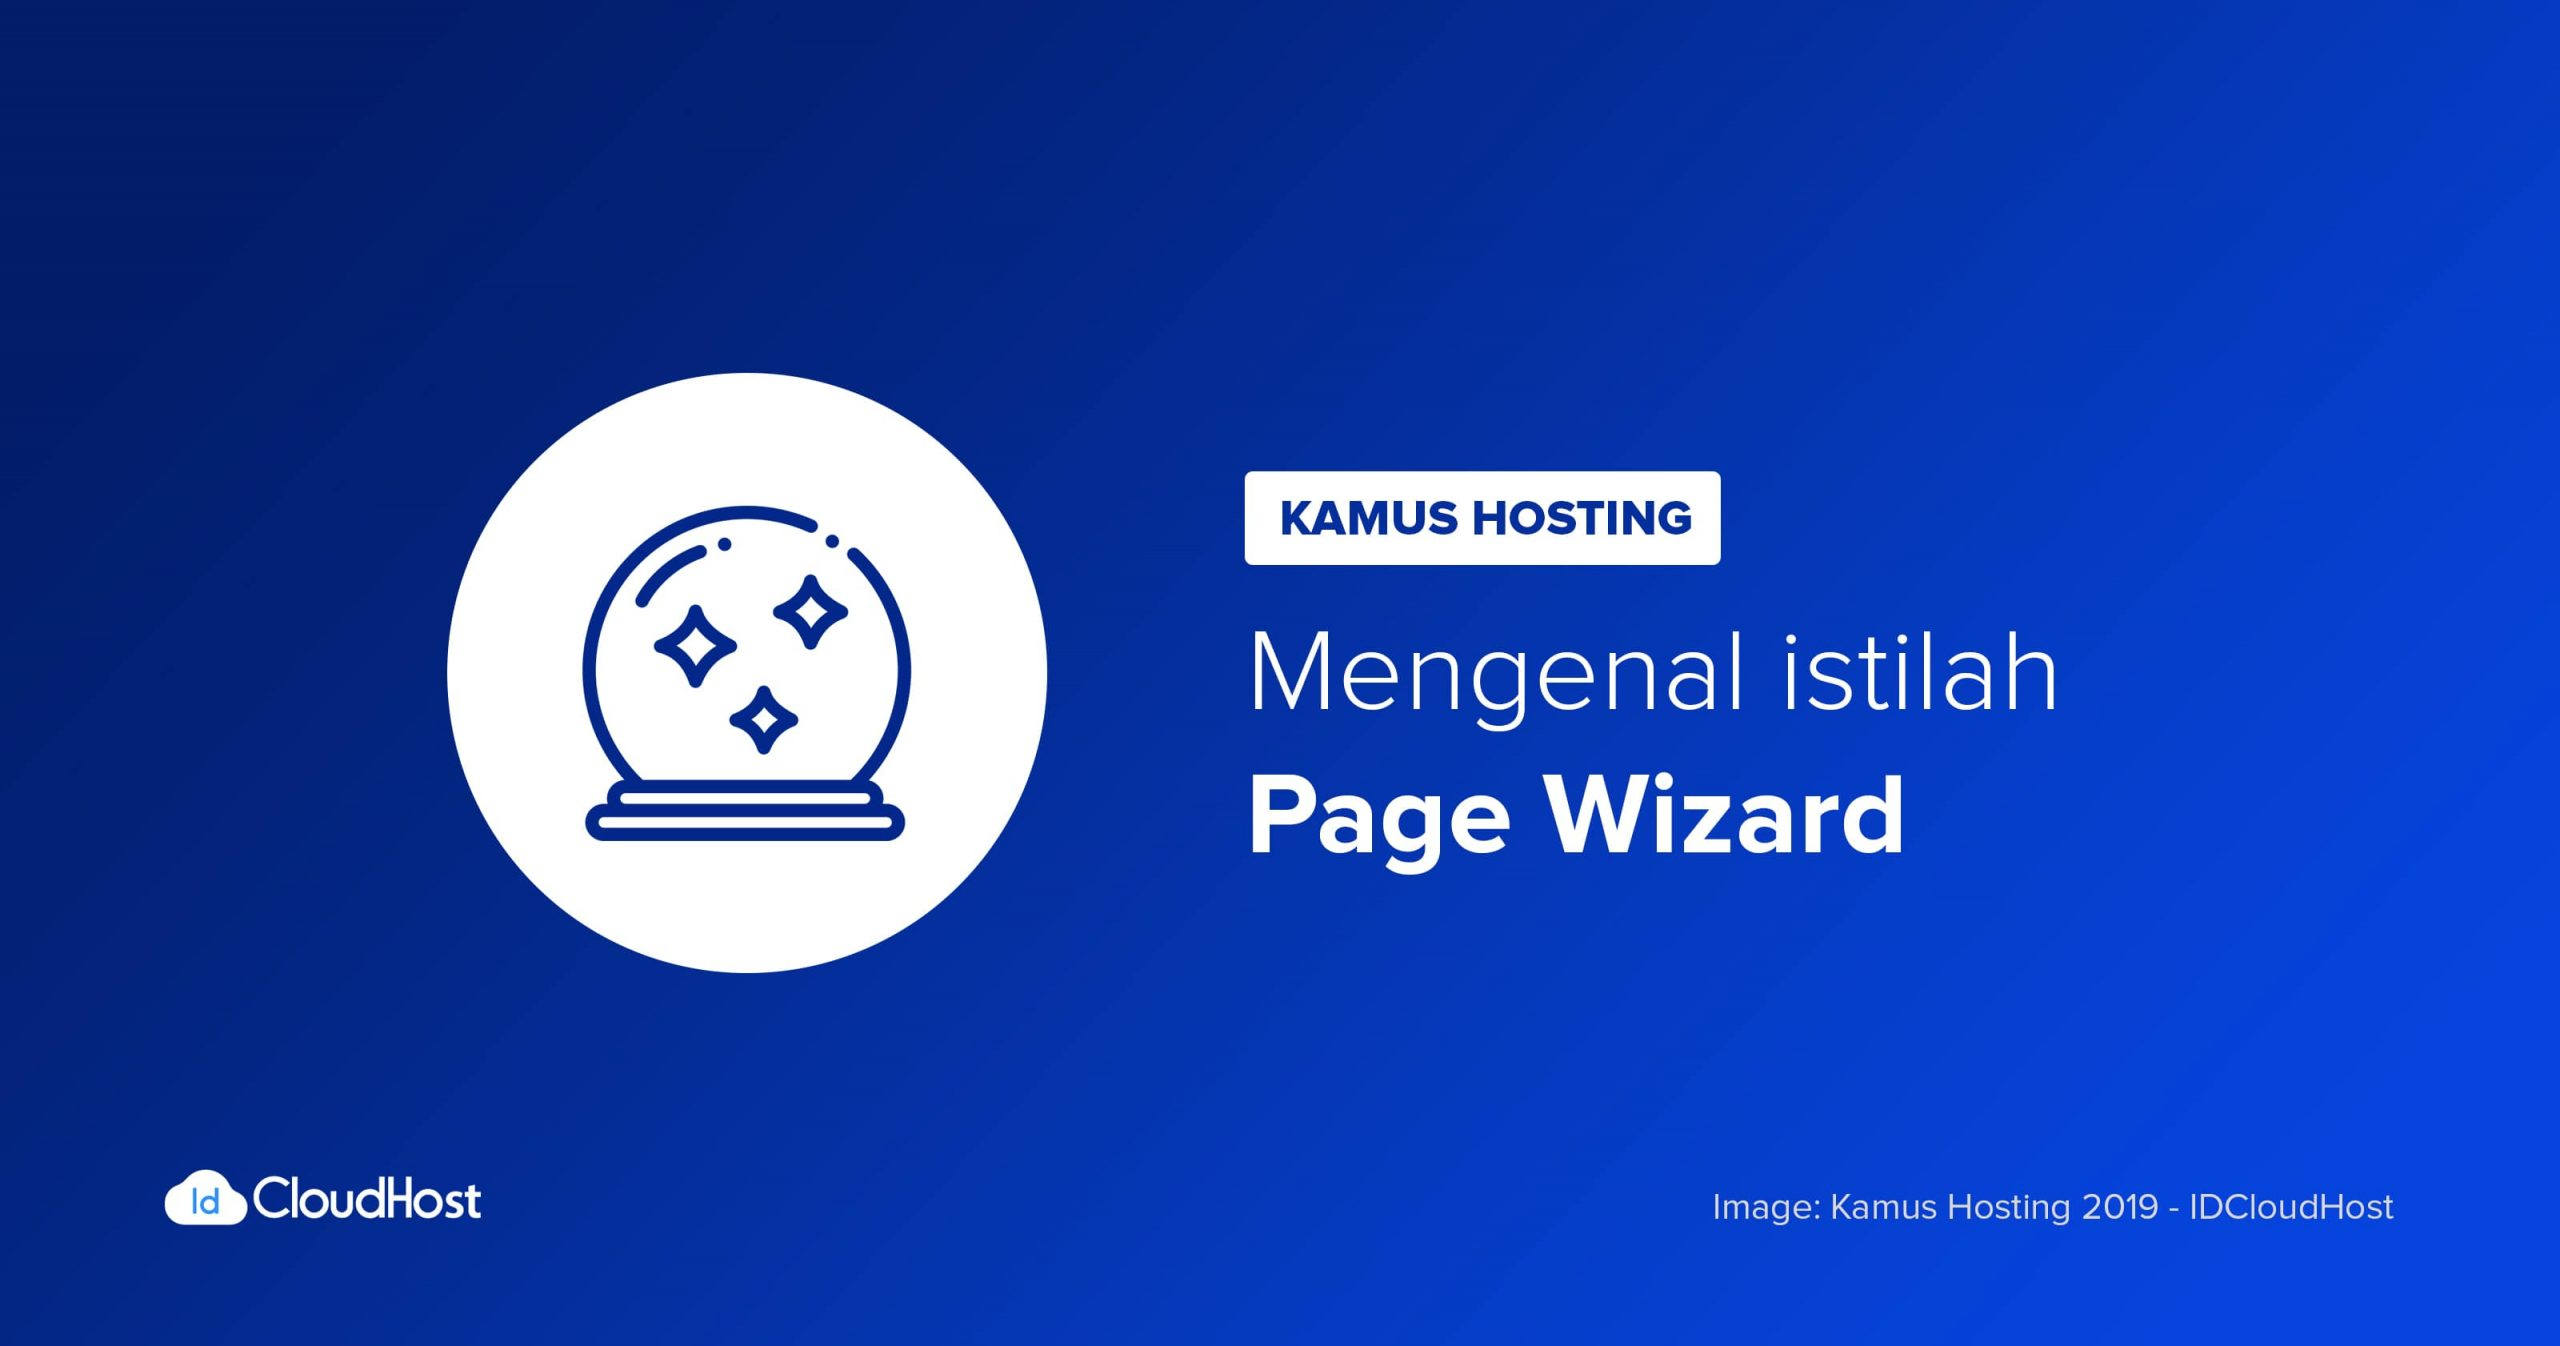 Page Wizard